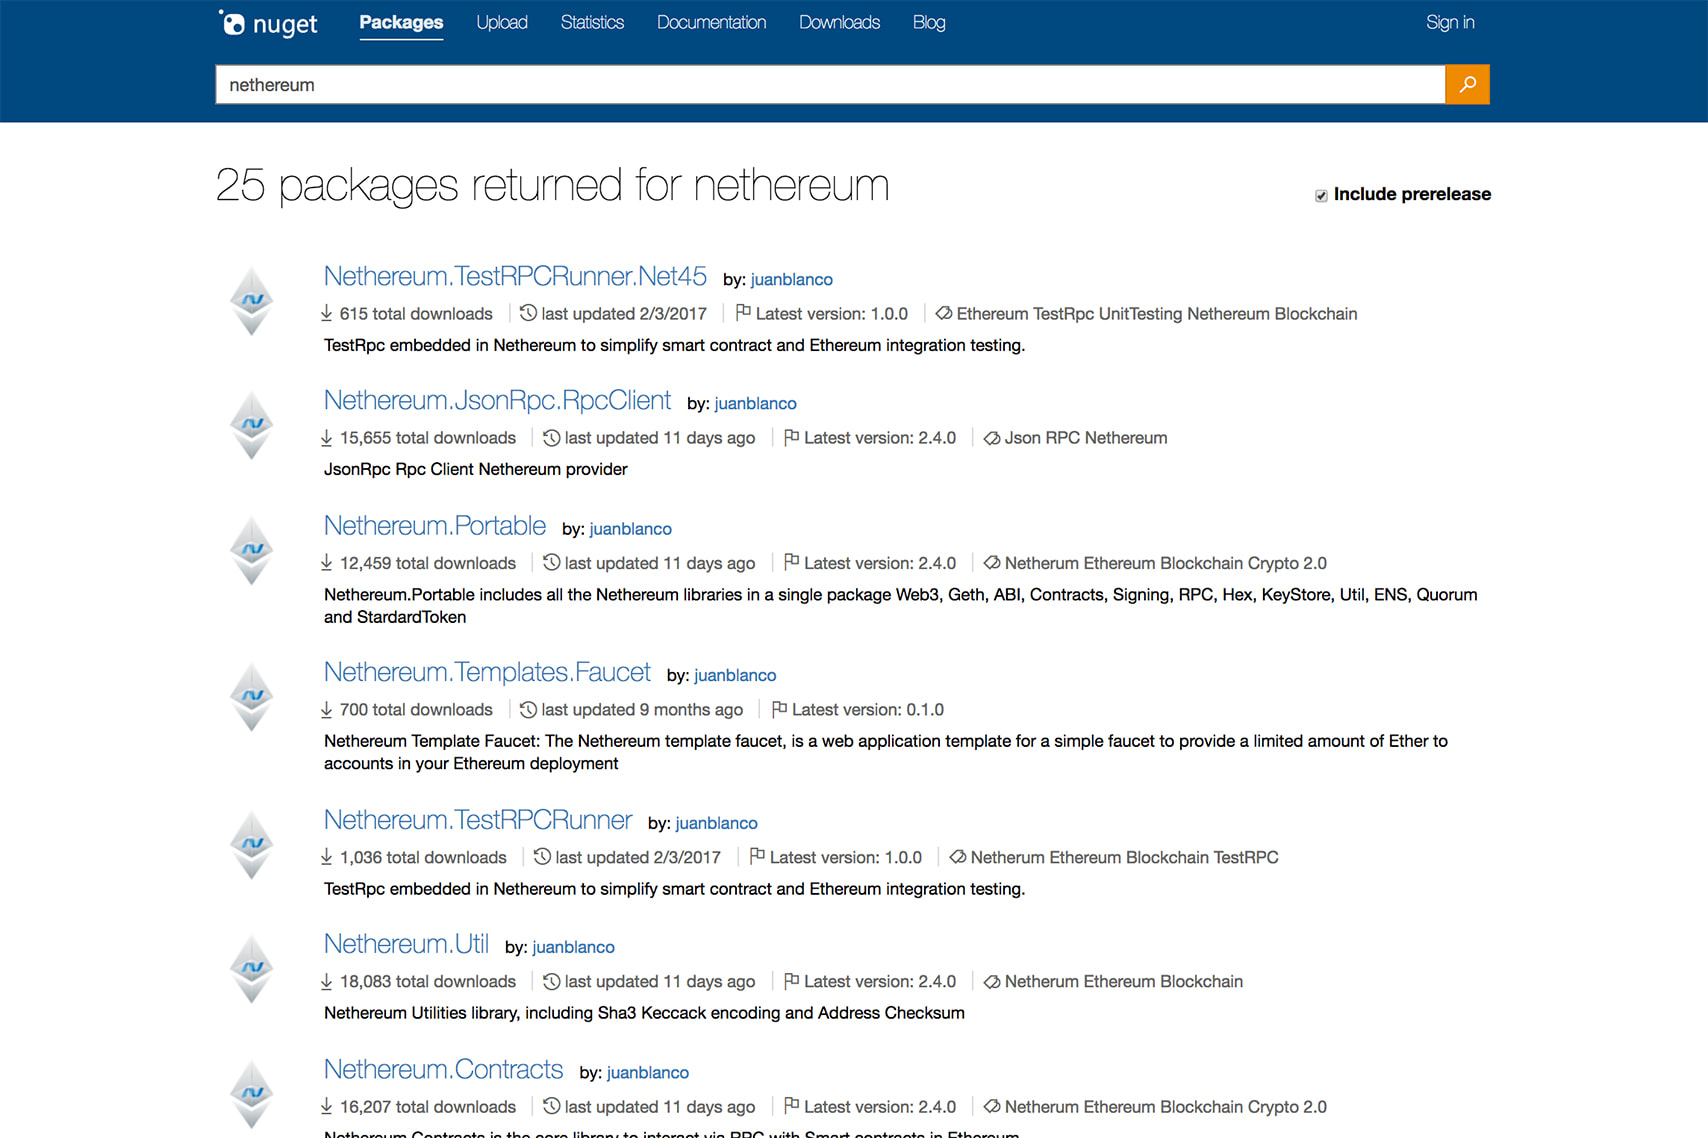 Nethereum NuGet Packages